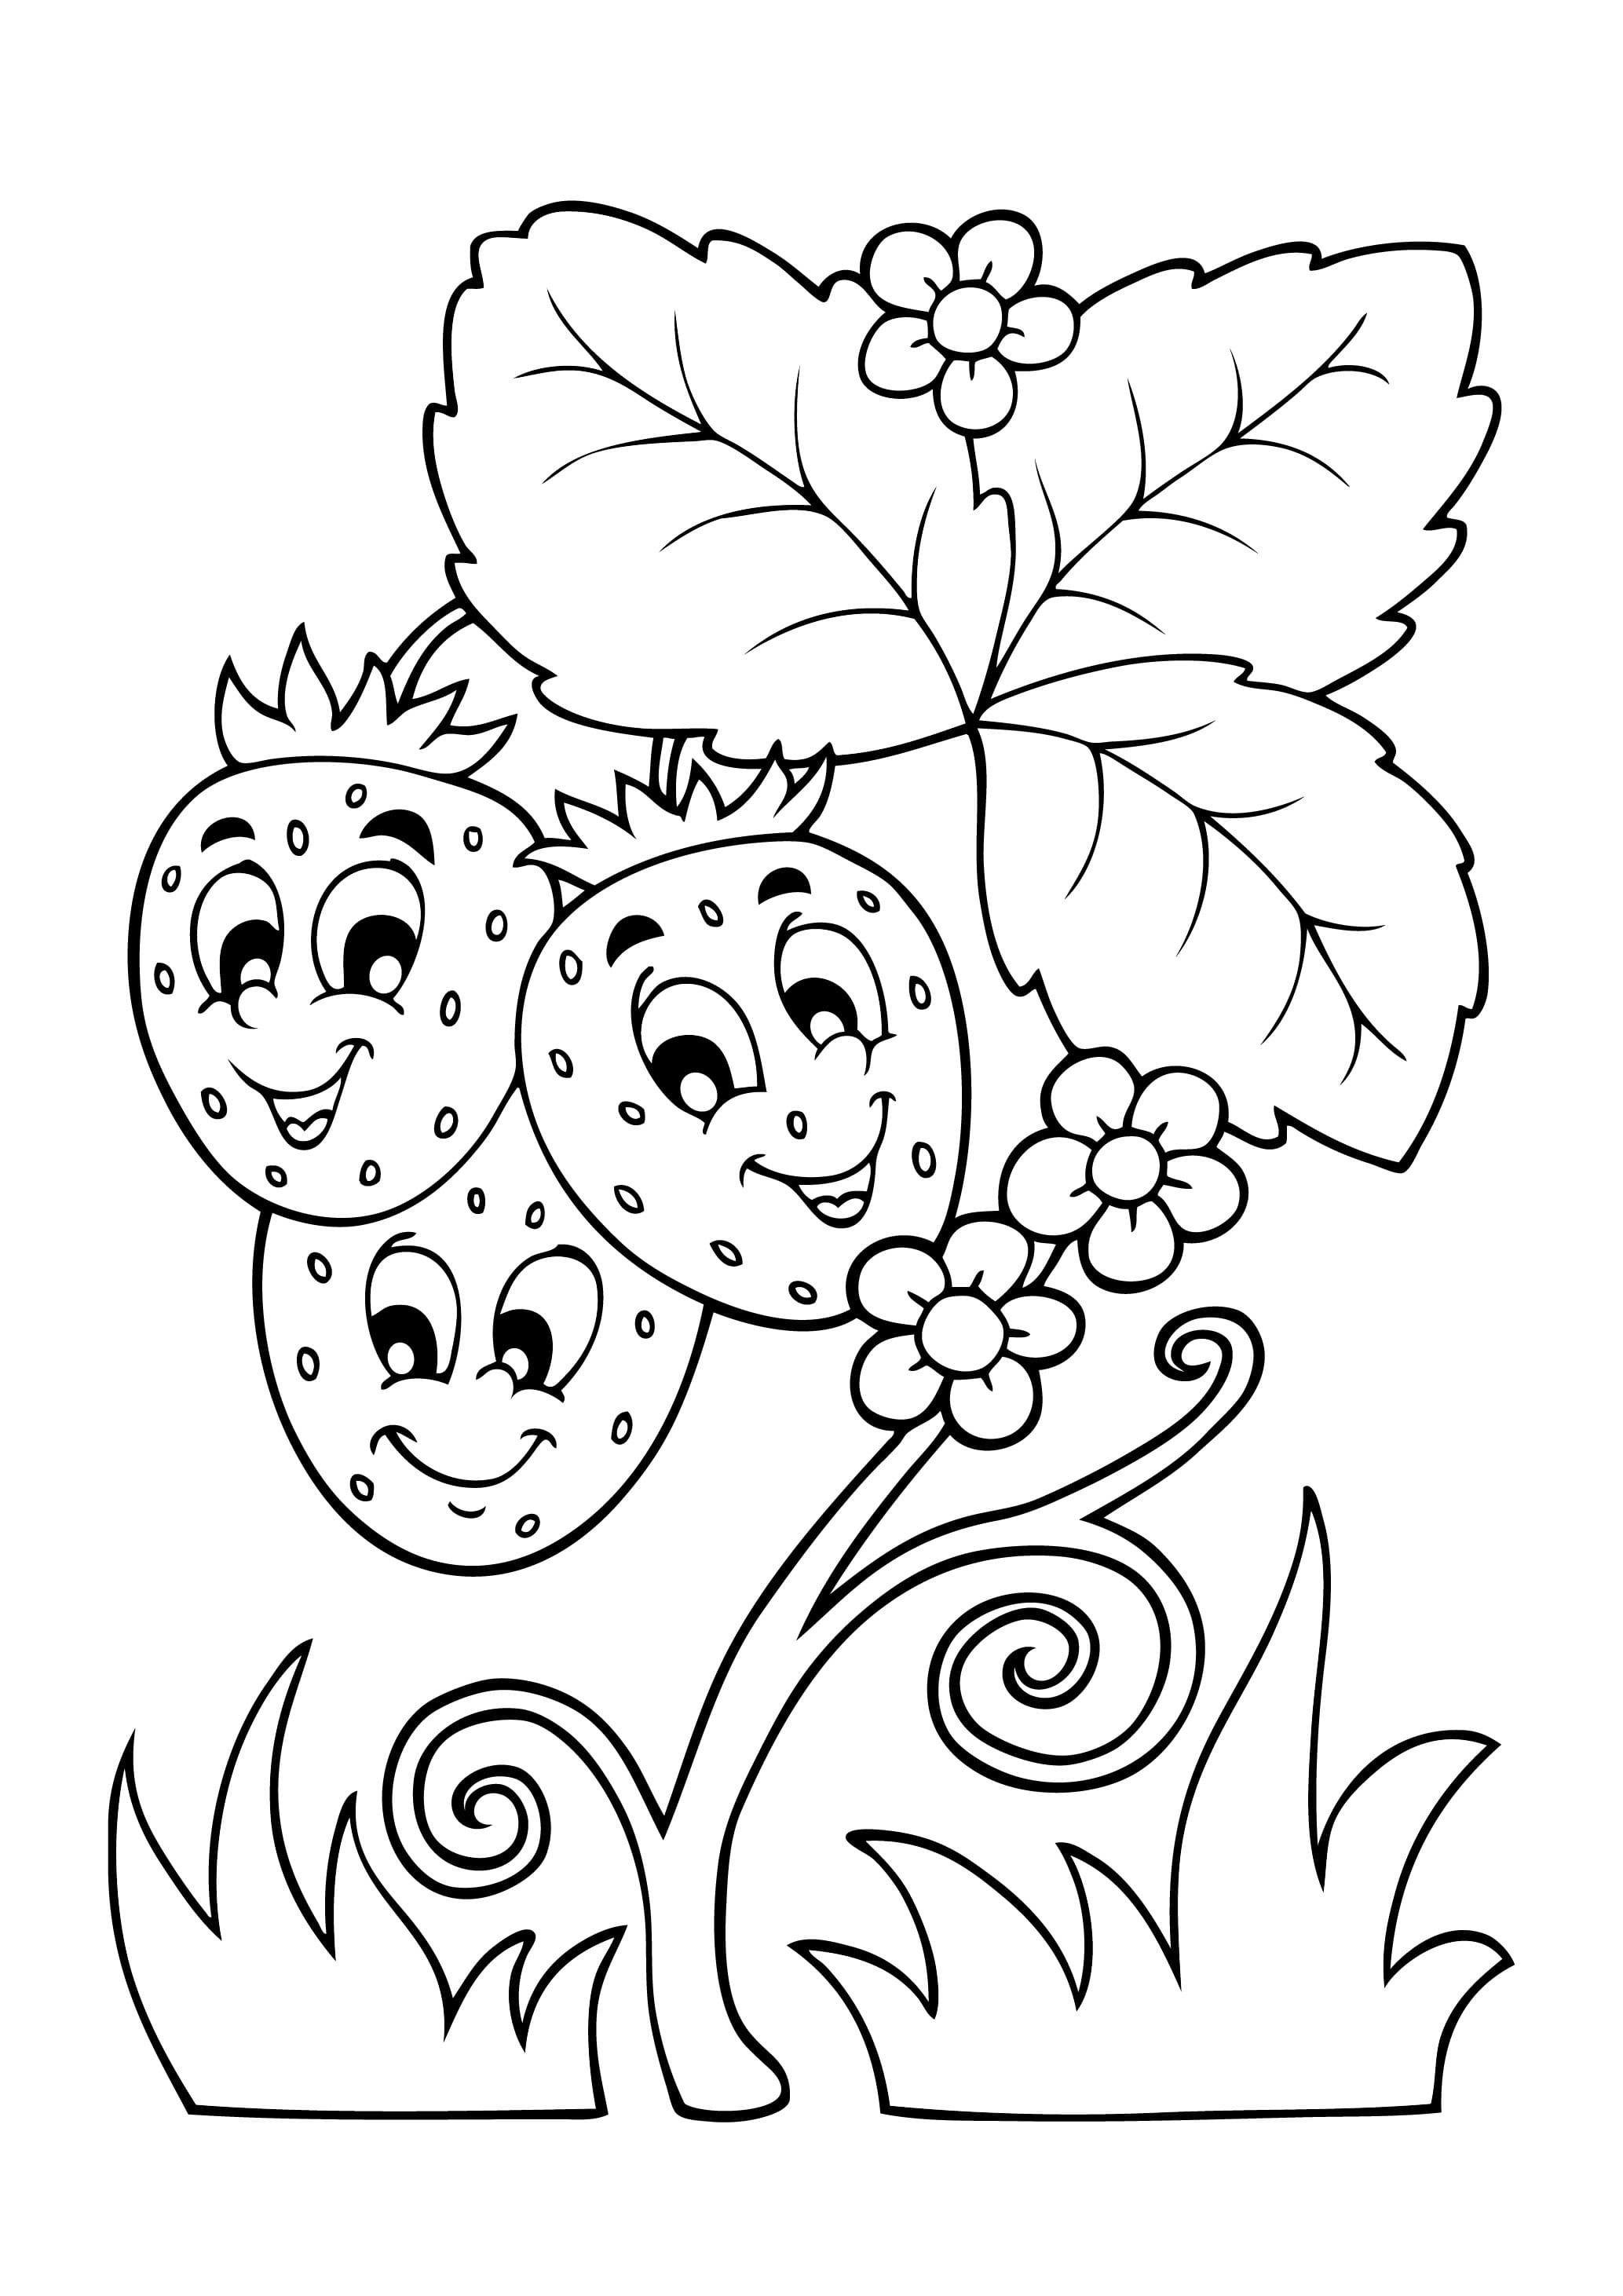 Summer Coloring Pages. 105 Best Images Free Printable